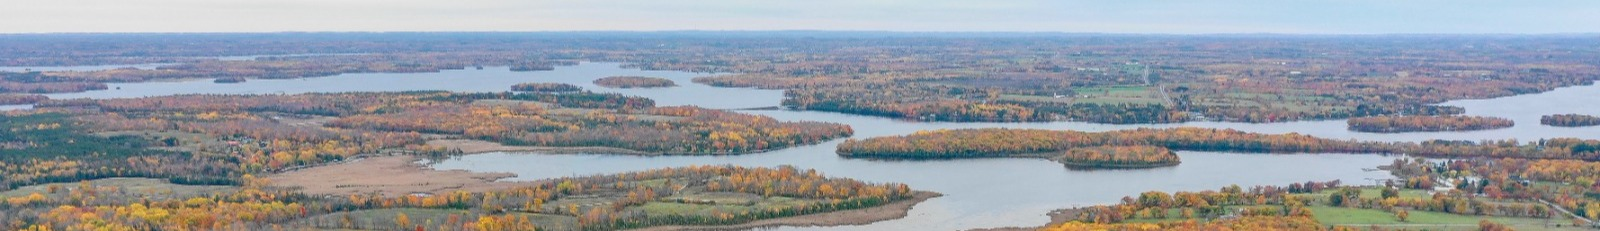 Aerial photo of Trent Lakes